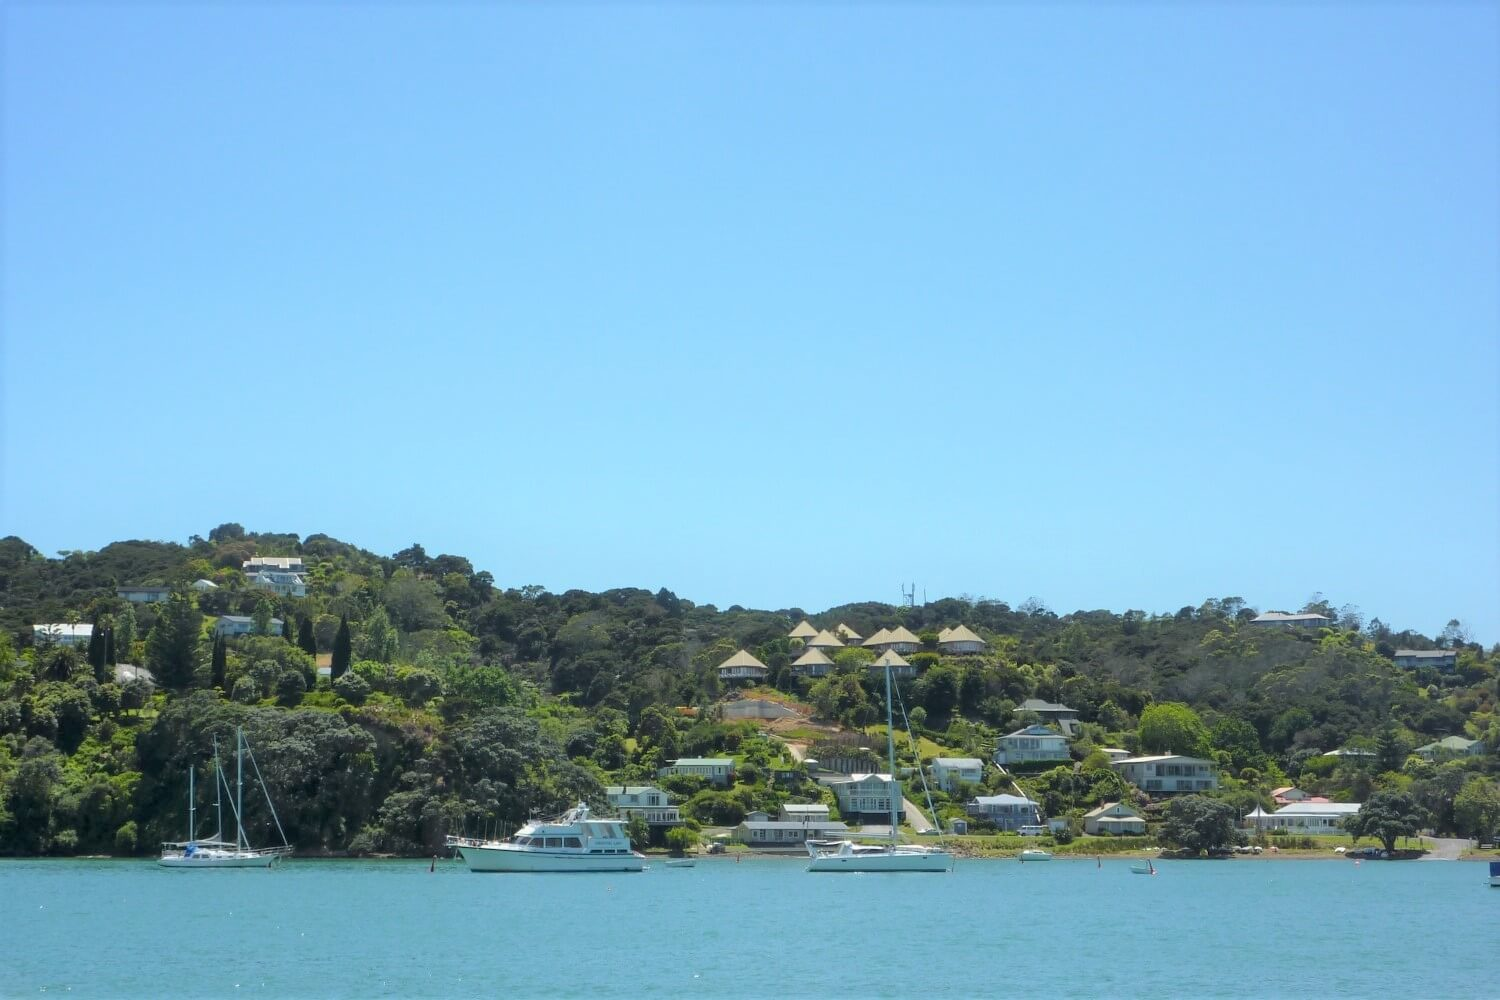 The town of Russell in the Bay of Islands